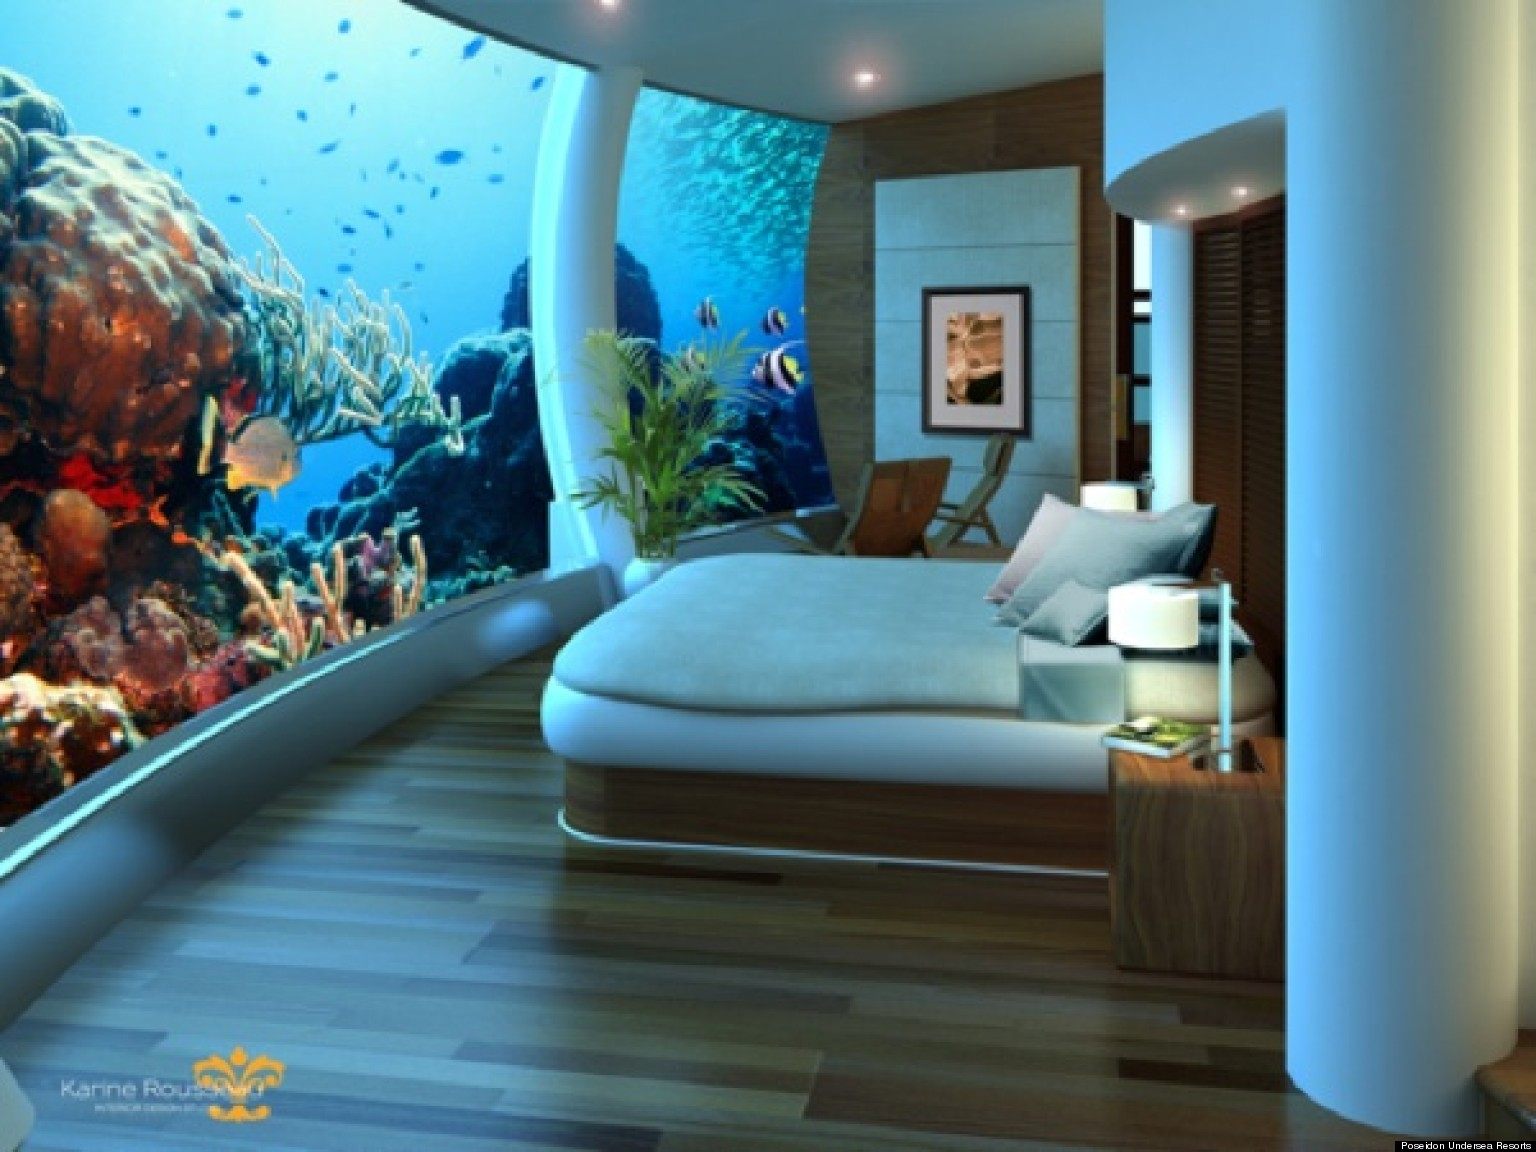 Underwater Hotels Five Things You Need To Know PHOTOS : o UNDERWATER HOTELS facebook from www.huffingtonpost.com size 1536 x 1152 jpeg 256kB